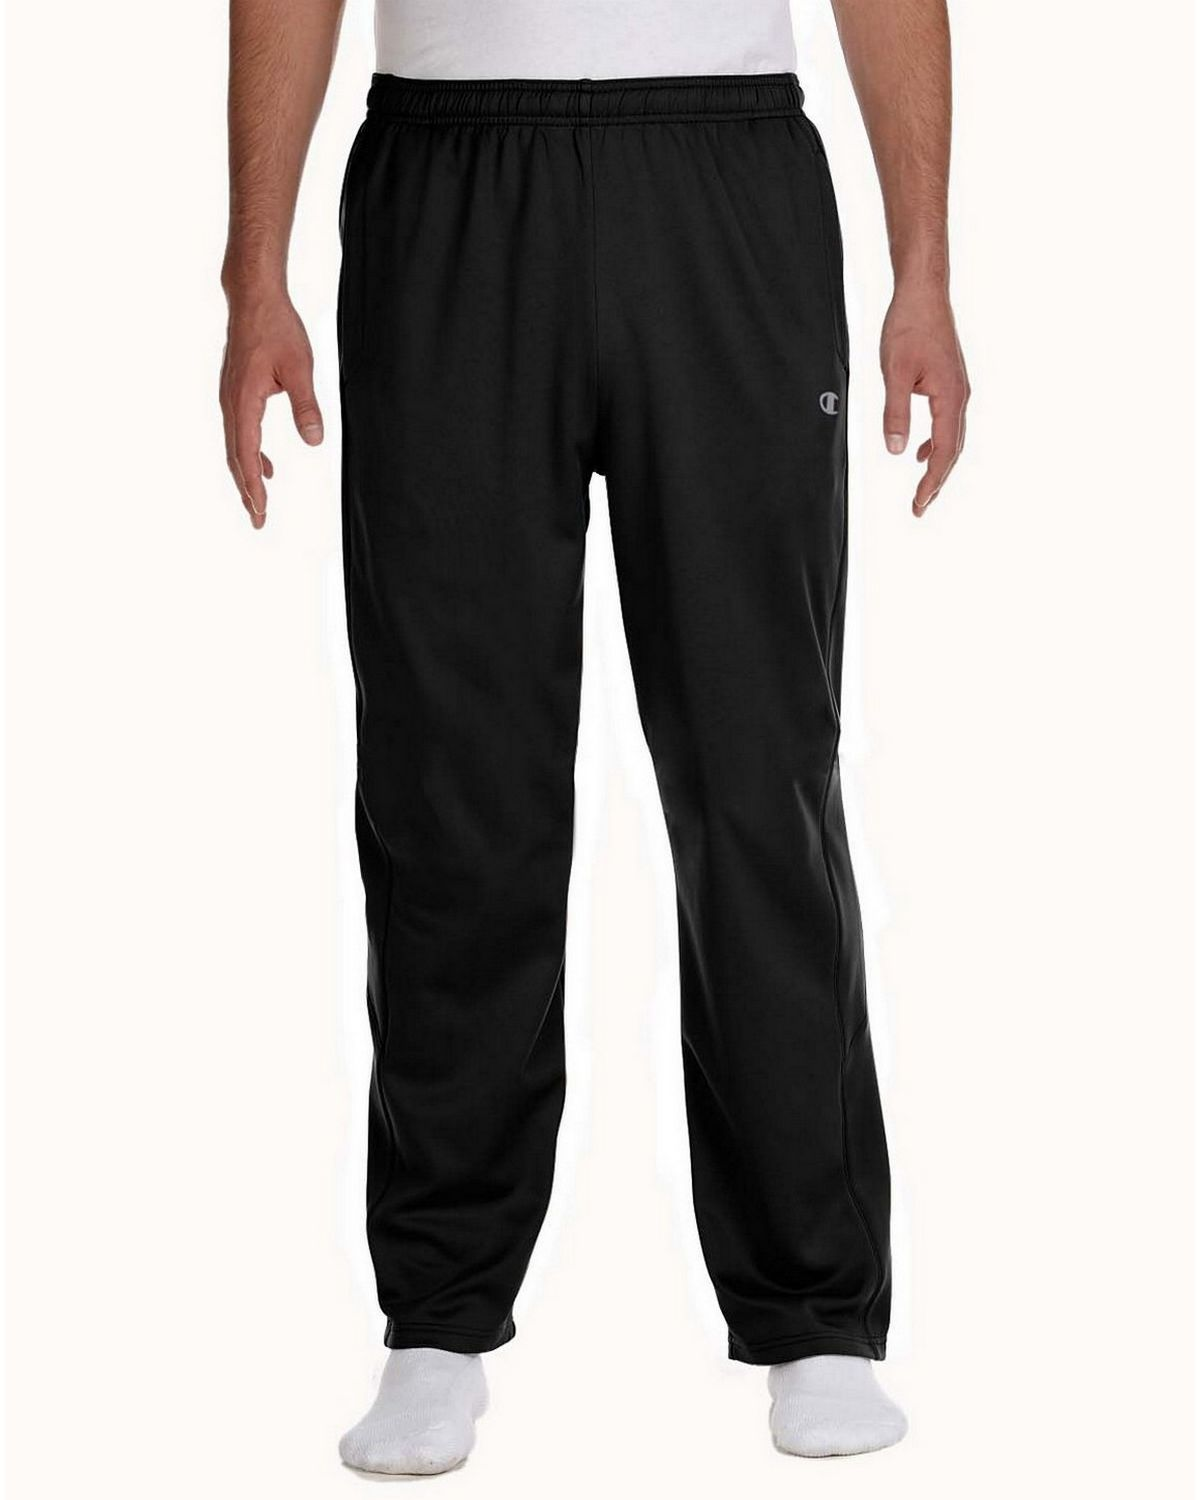 Champion S280 Performance Pants - Black - XL S280